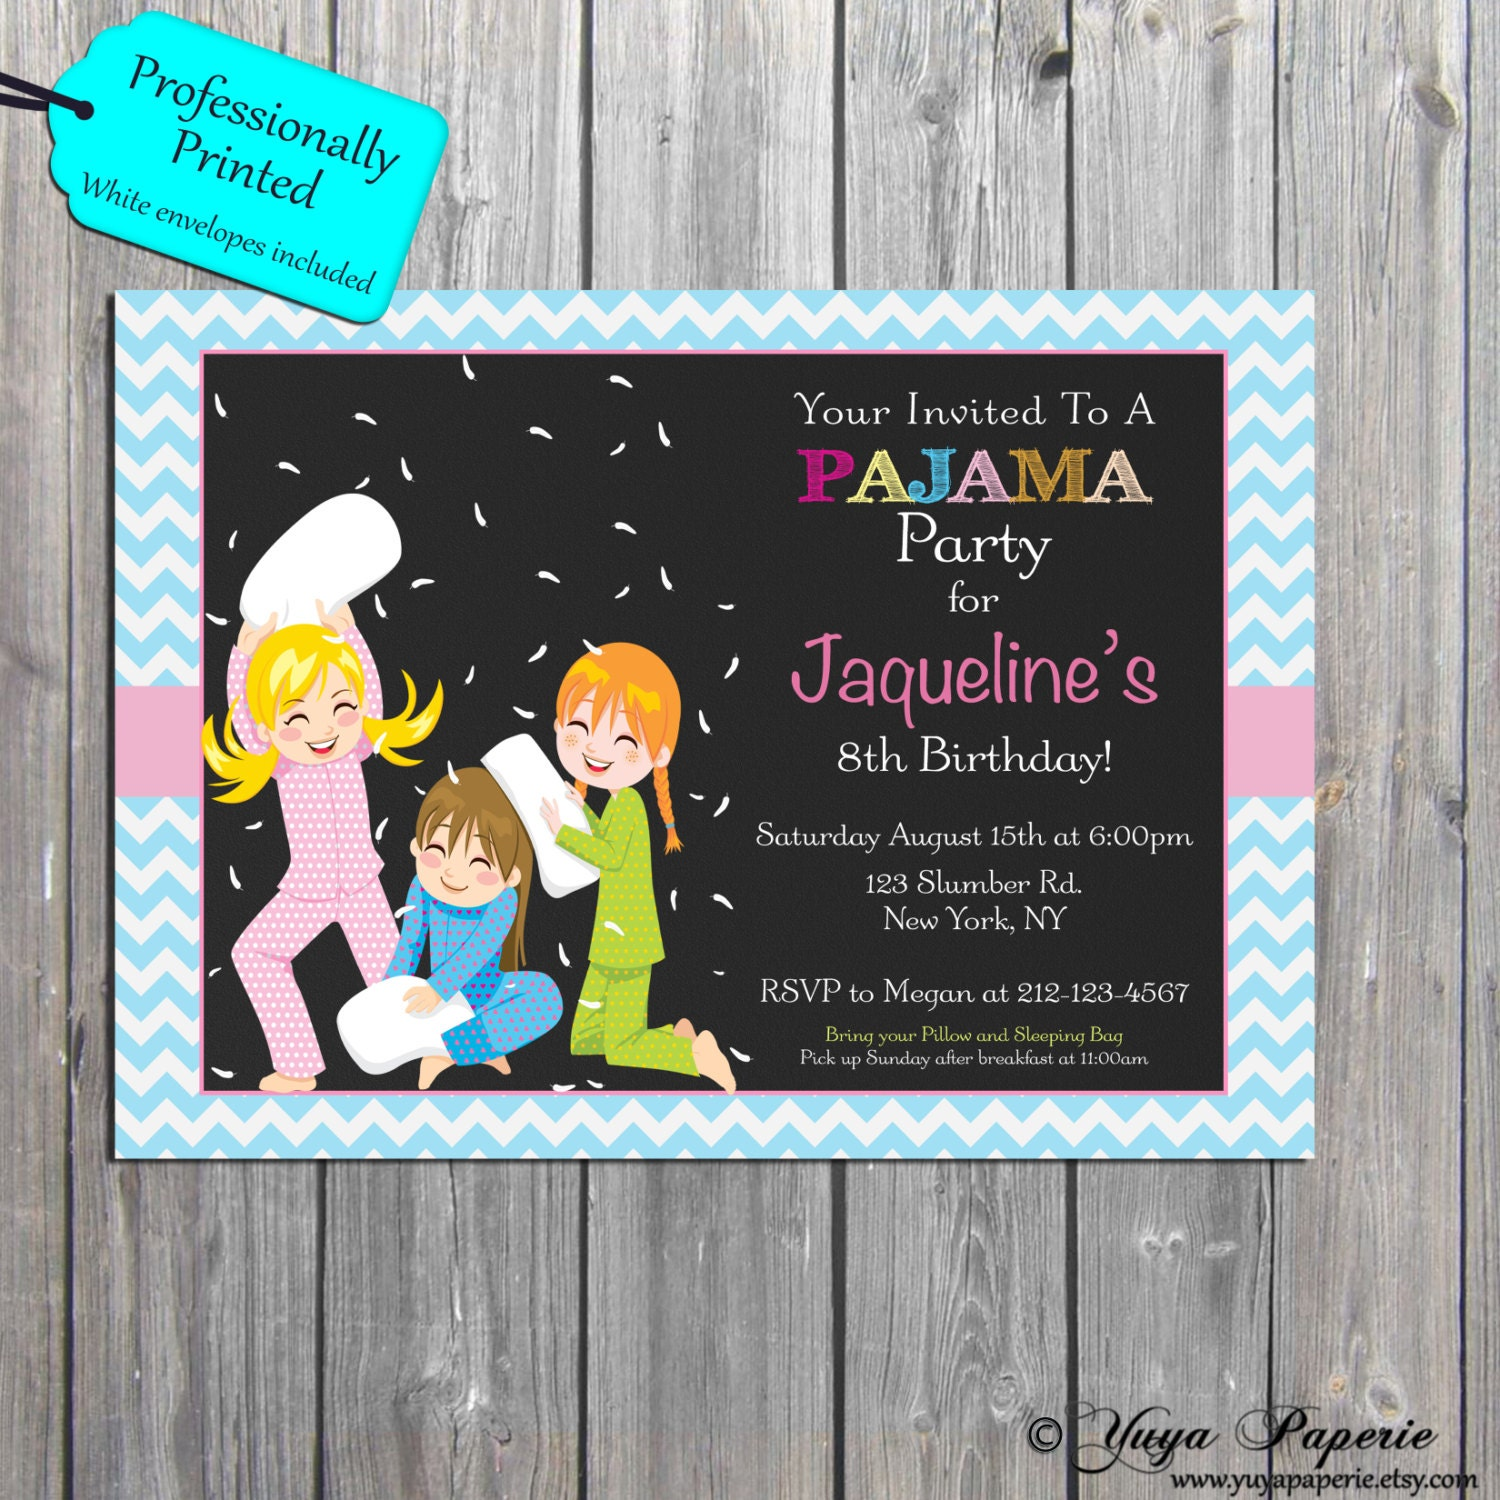 Pajama party invitation slumber birthday party invitations pajama party invitation slumber birthday party invitations sleepover invite professionally printed also available in digital format monicamarmolfo Image collections